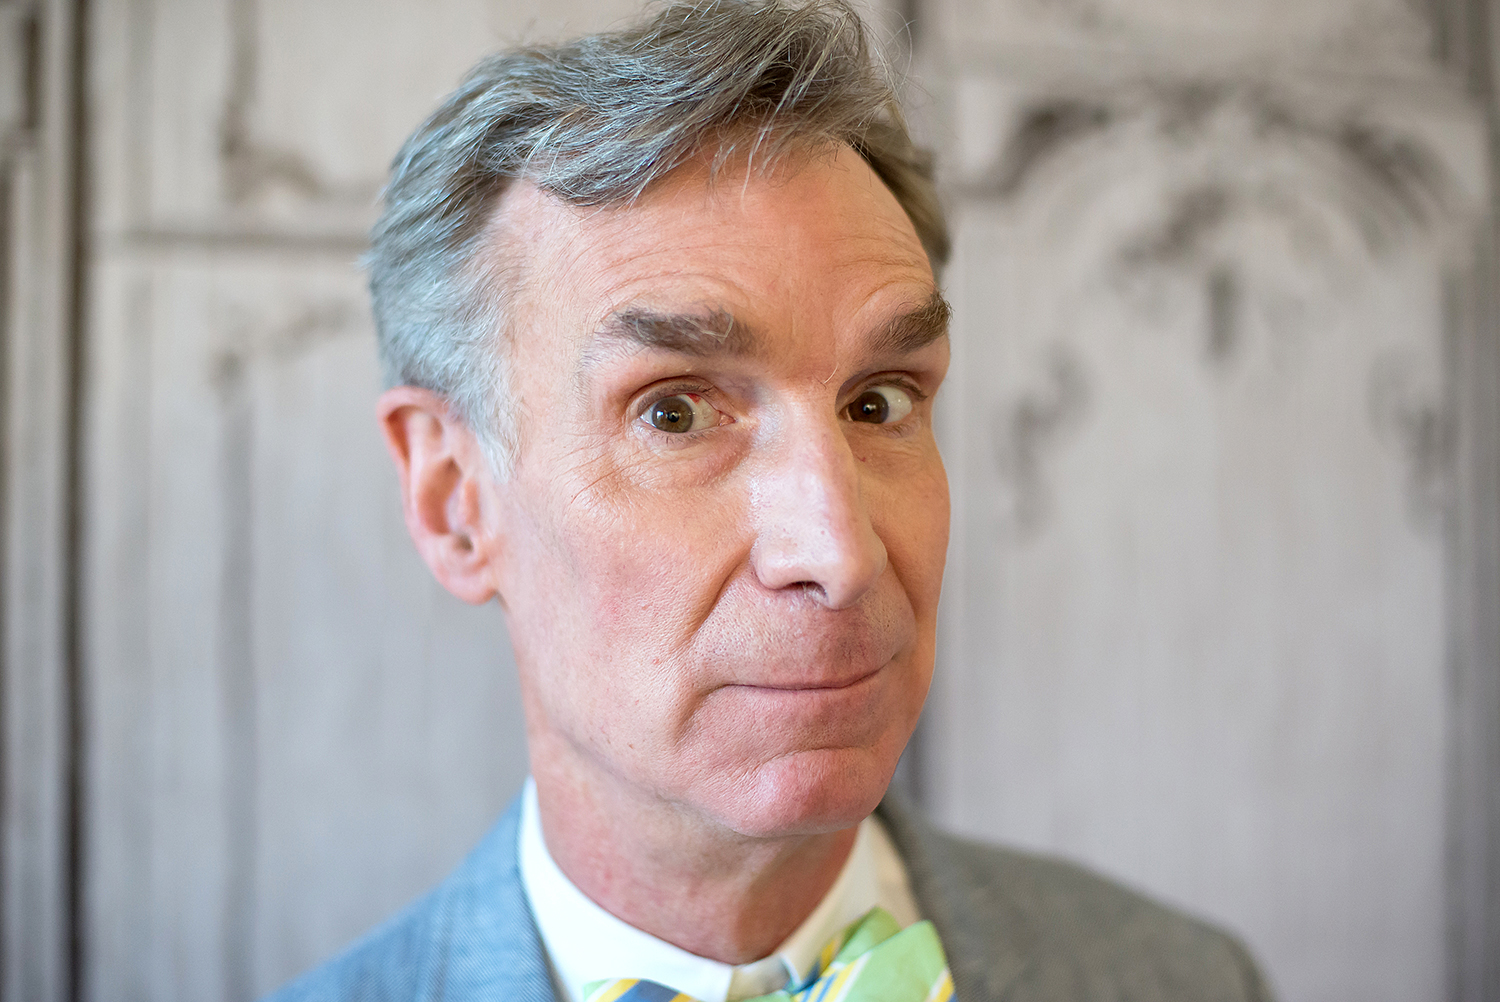 Bill Nye New Show on Netflix